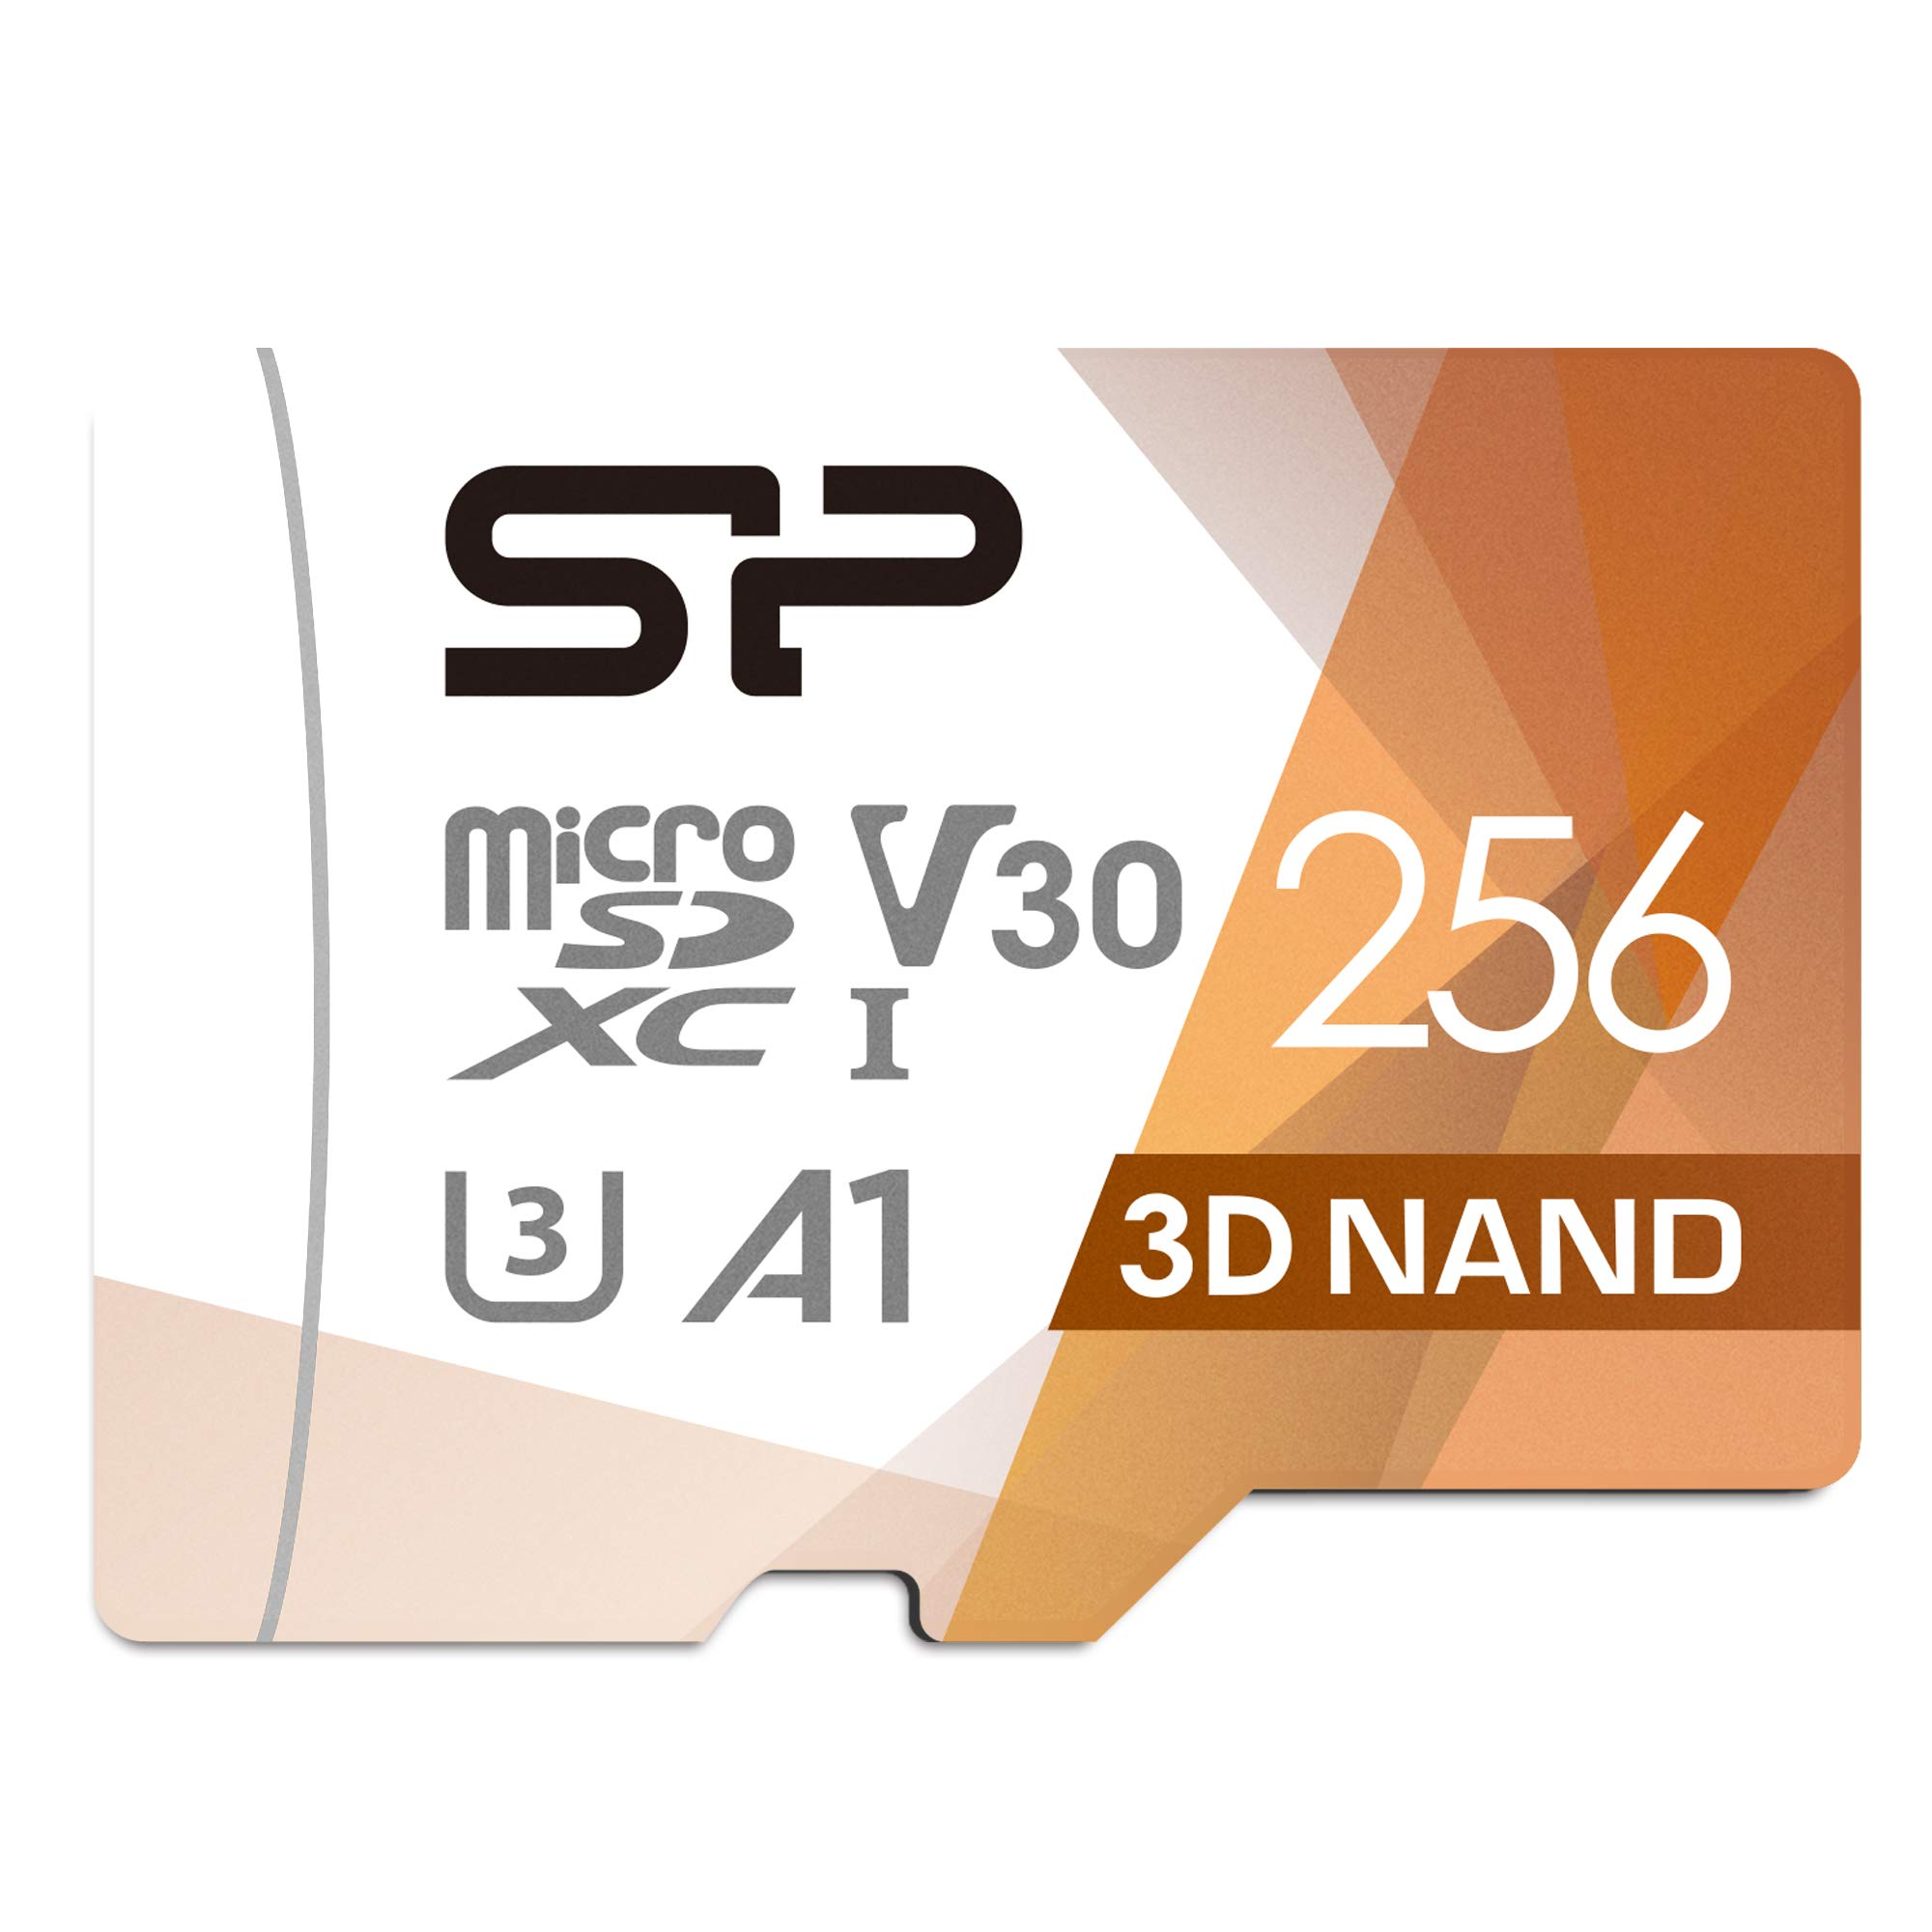 Silicon Power 256GB R/W up to 100/ 80MB/s Superior Pro microSDXC UHS-I (U3), V30 4K A1, High Speed MicroSD Card with Adapter by SP Silicon Power